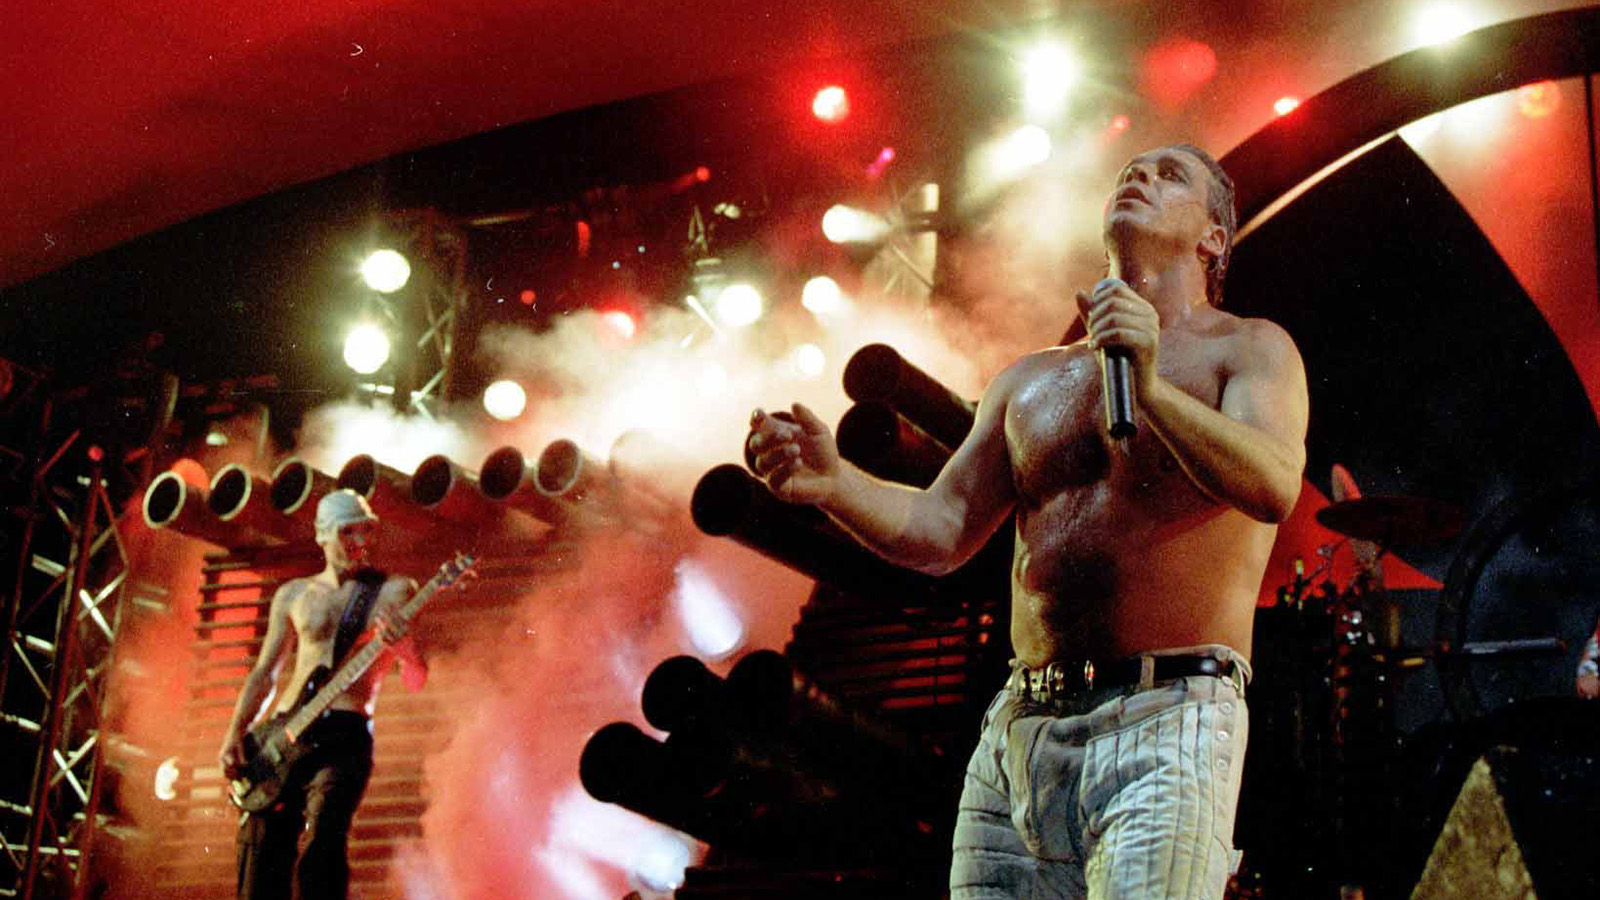 See Rammstein's Infamous 1998 Family Values Show That Landed Members in Jail